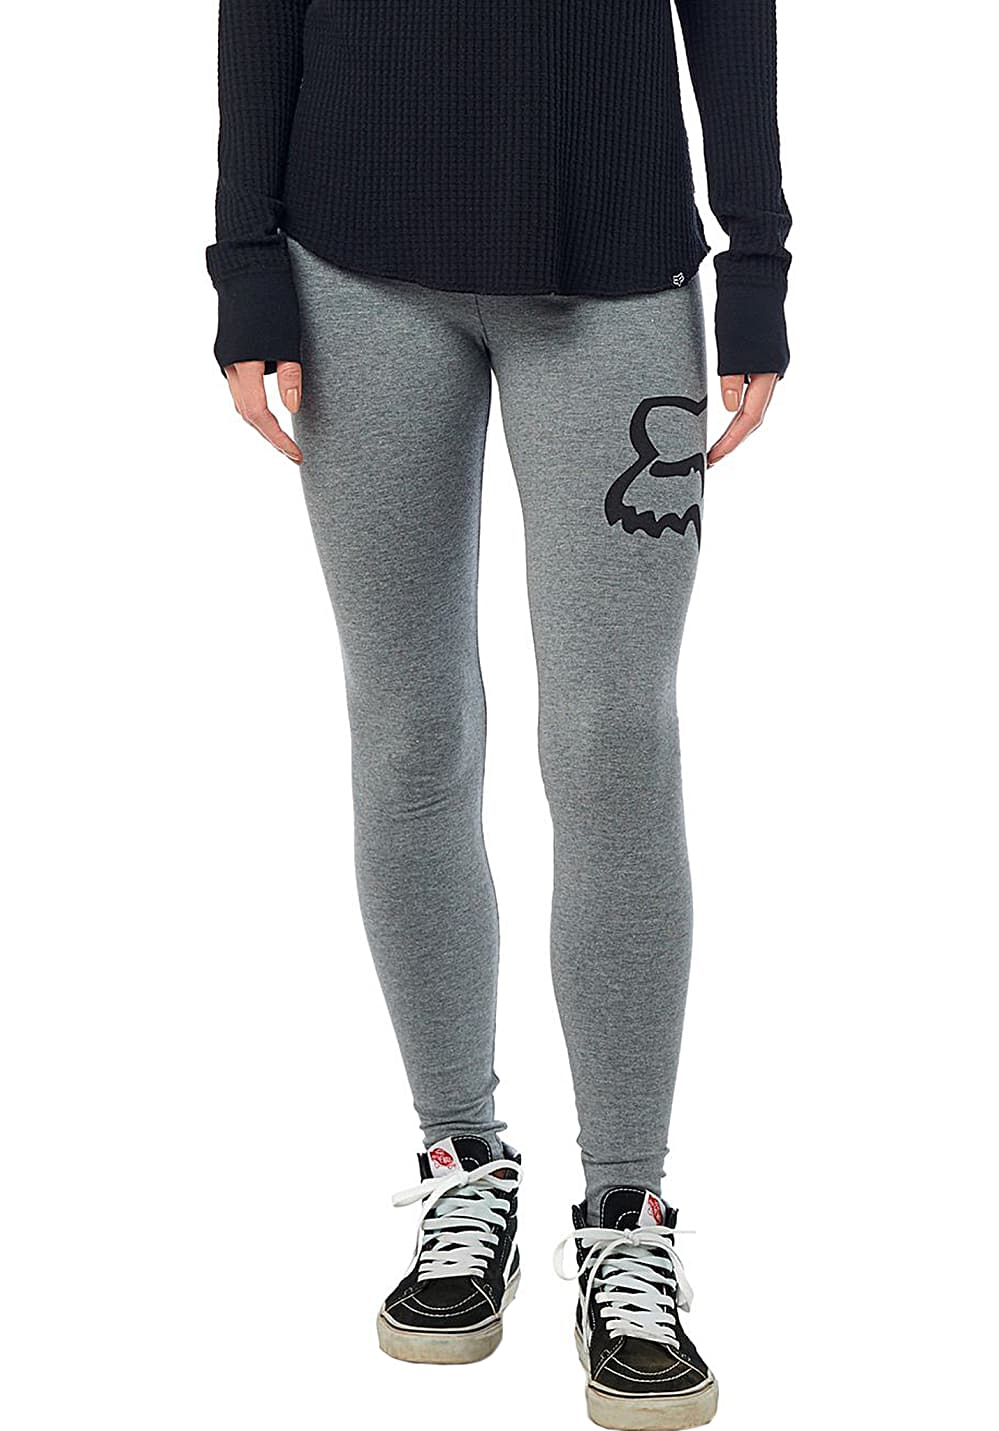 Hosen für Frauen - FOX Enduration Leggings für Damen Grau  - Onlineshop Planet Sports